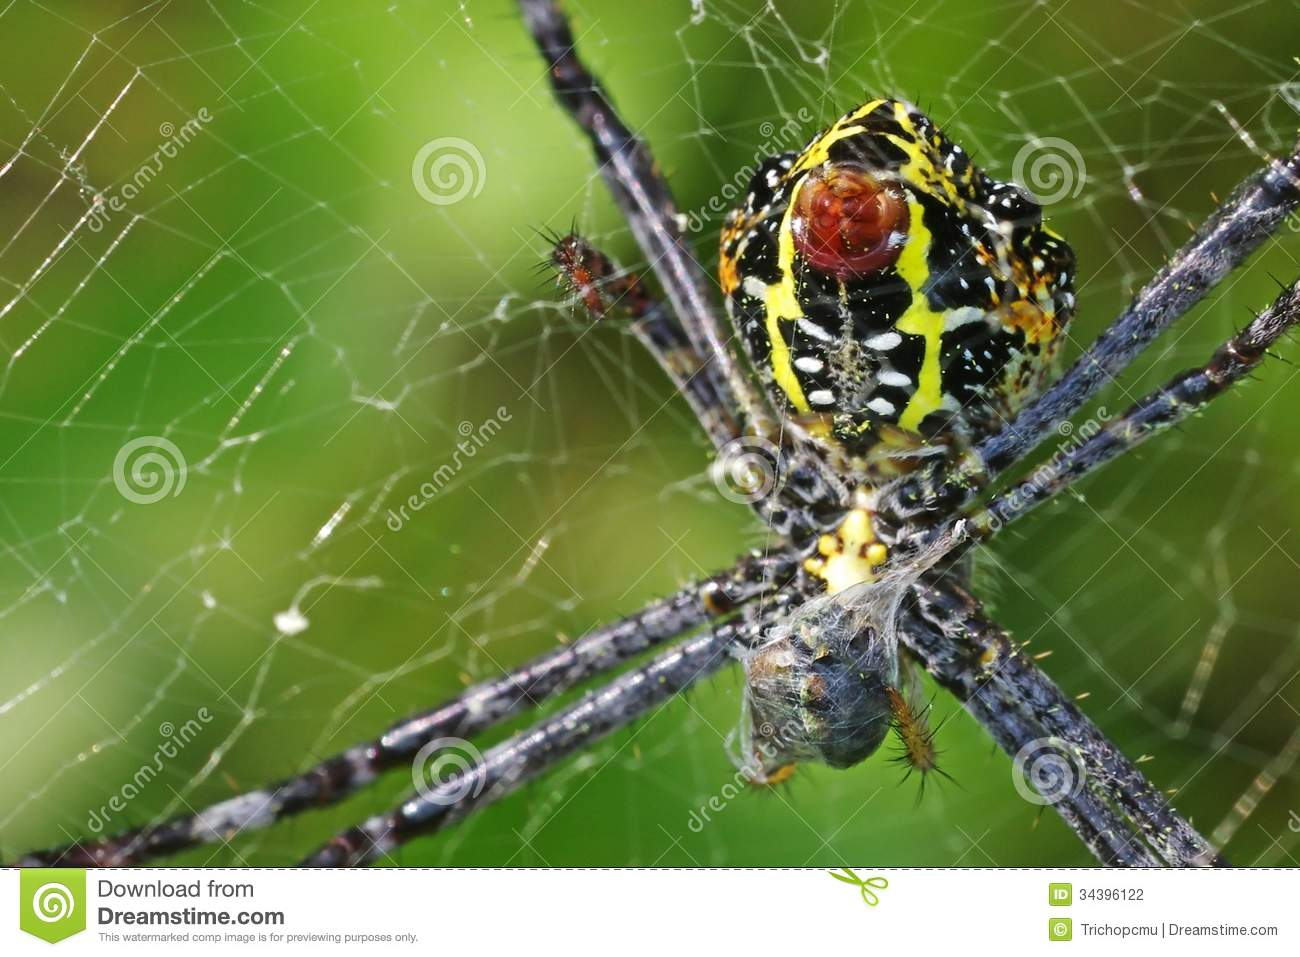 Spider in web with prey - photo#27